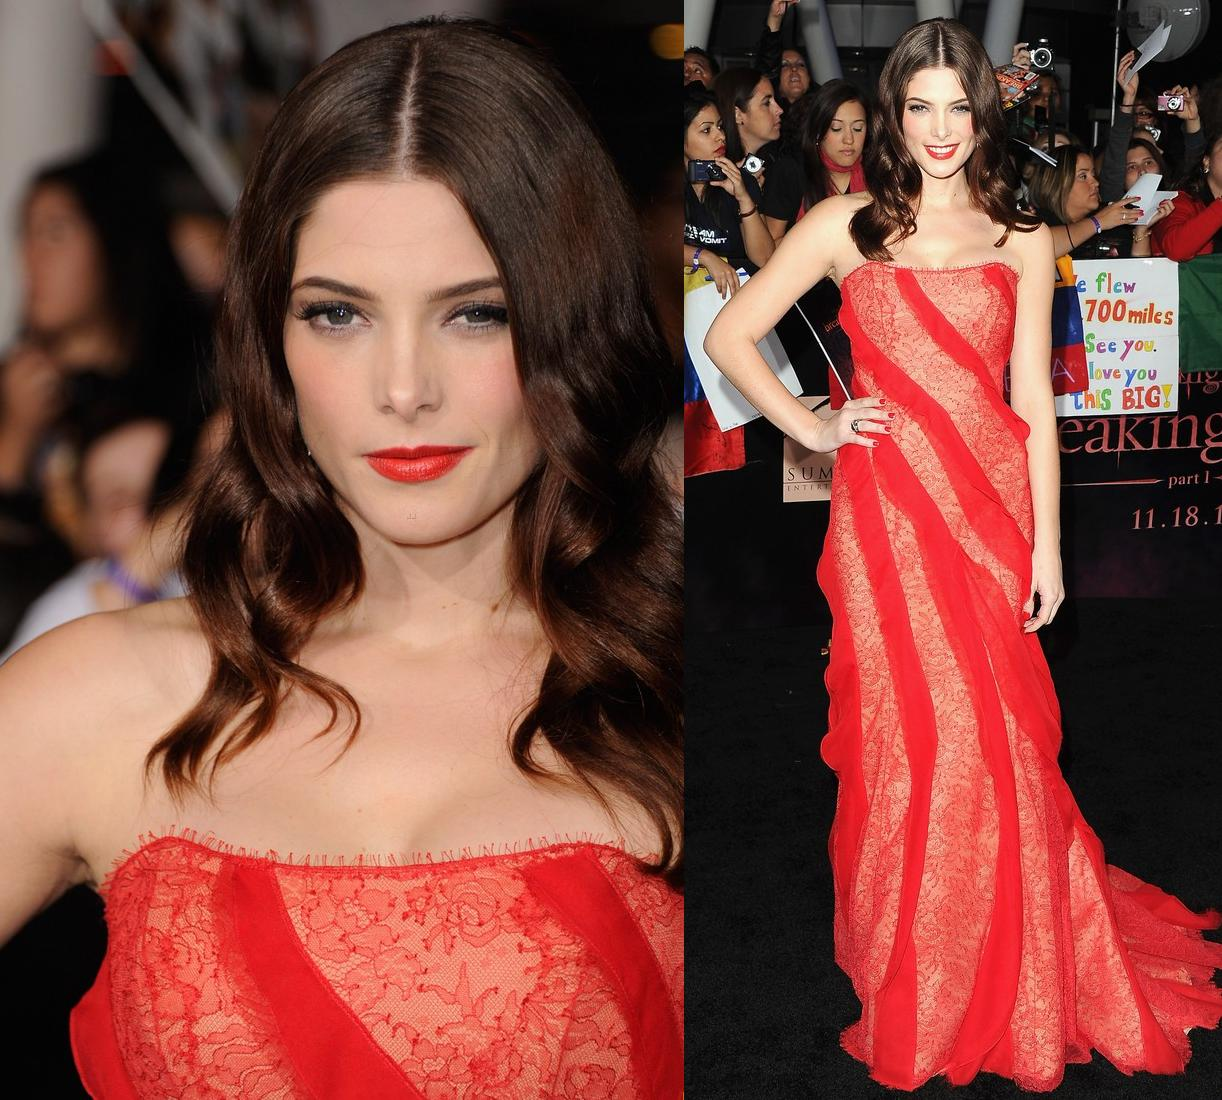 http://3.bp.blogspot.com/-izbuXzUXyqQ/TsItMIY5EuI/AAAAAAAACtM/dyDwBzkKEXs/s1600/ashley+greene+breaking+dawn+LA+premiere.jpg